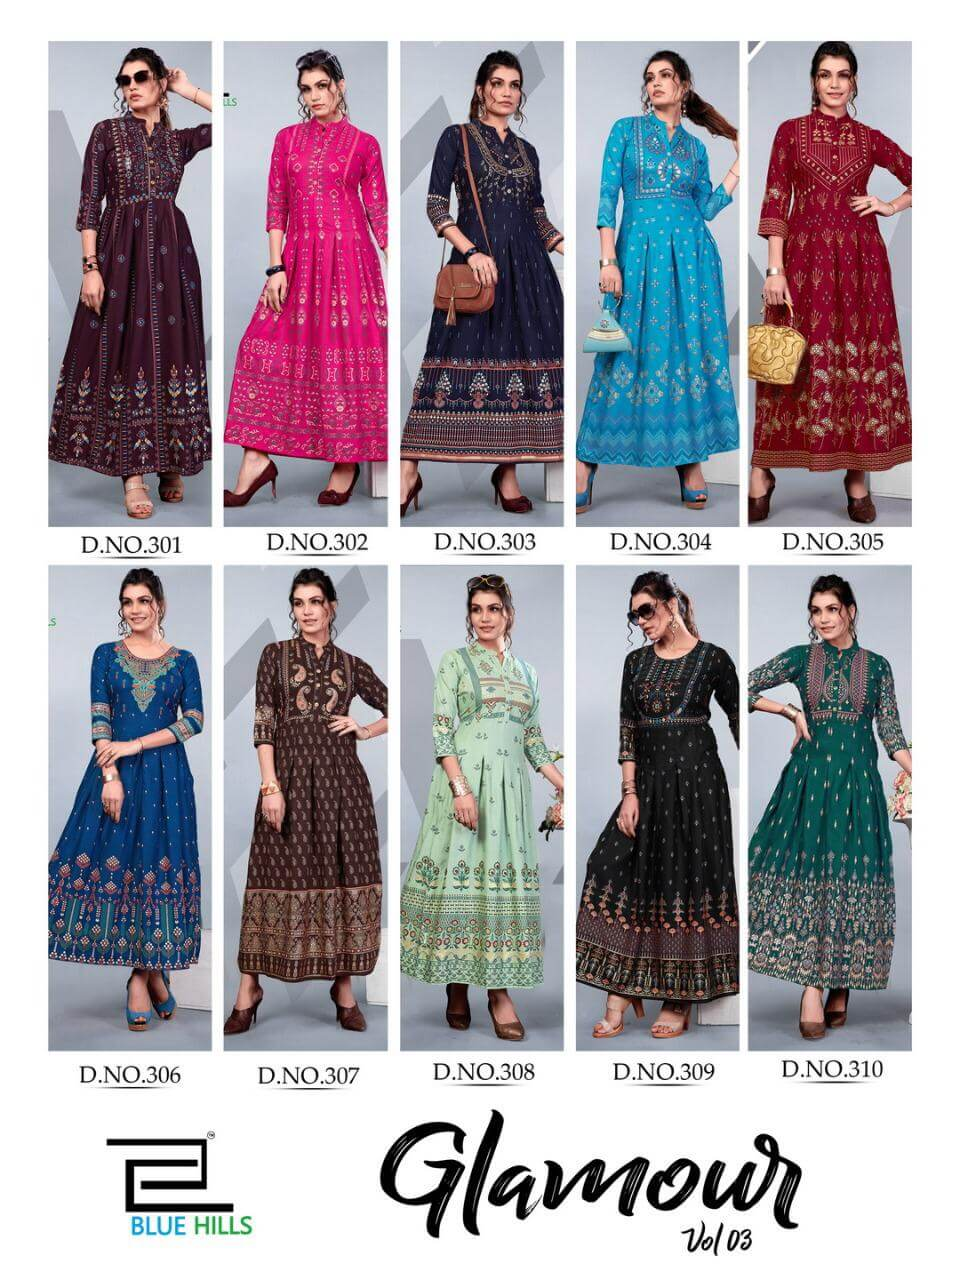 Blue Hills Glamour Vol 3 collection 12